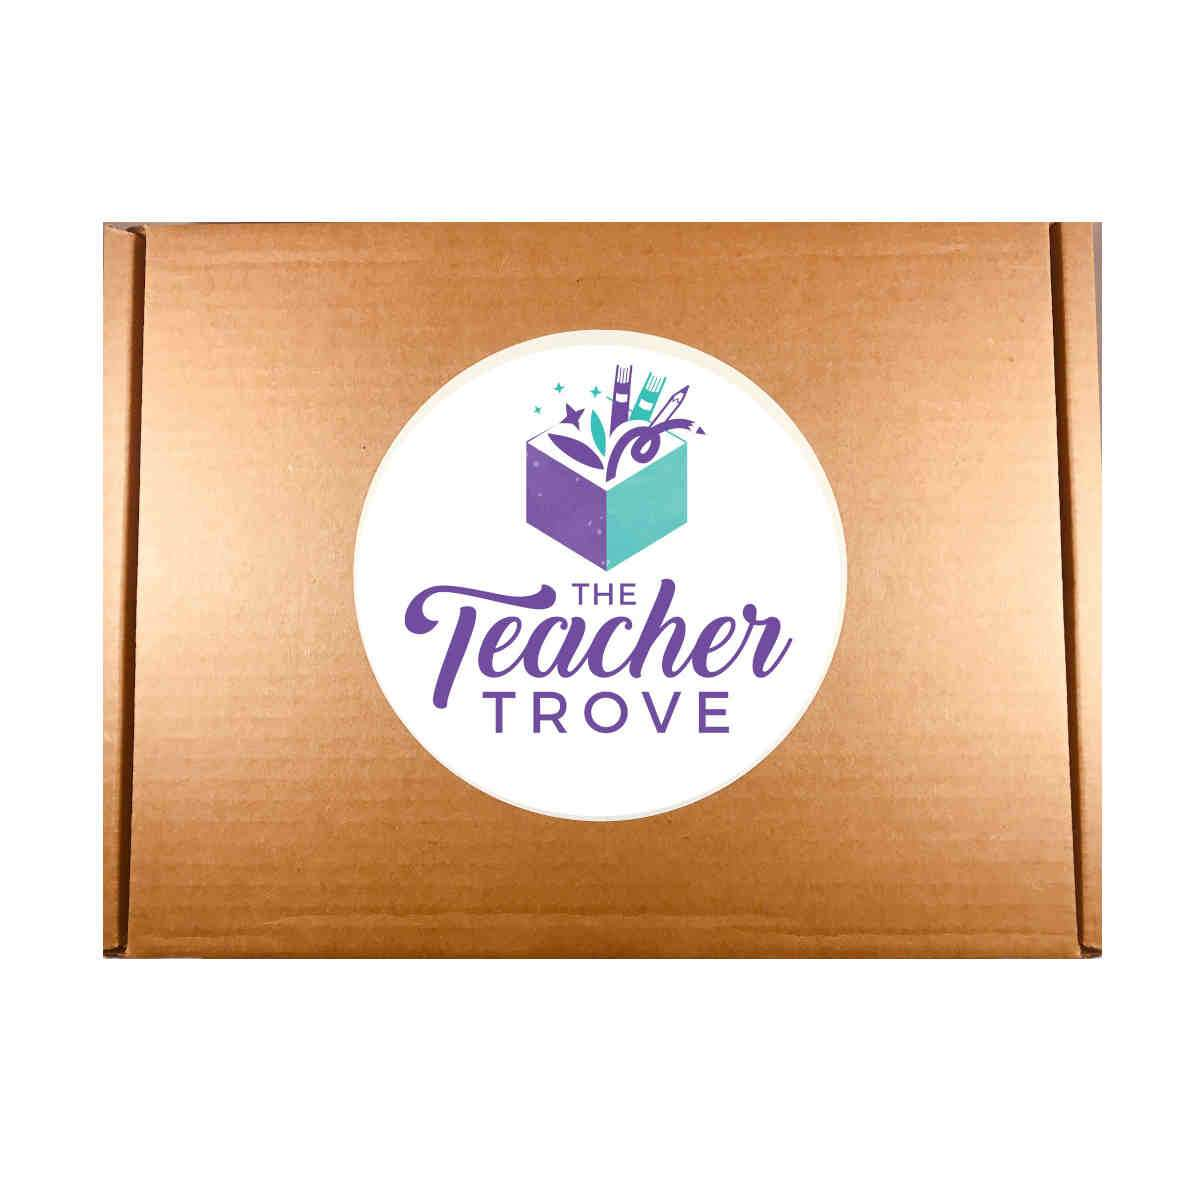 The Teacher Trove Monthly Subscription Box - The Teacher Trove